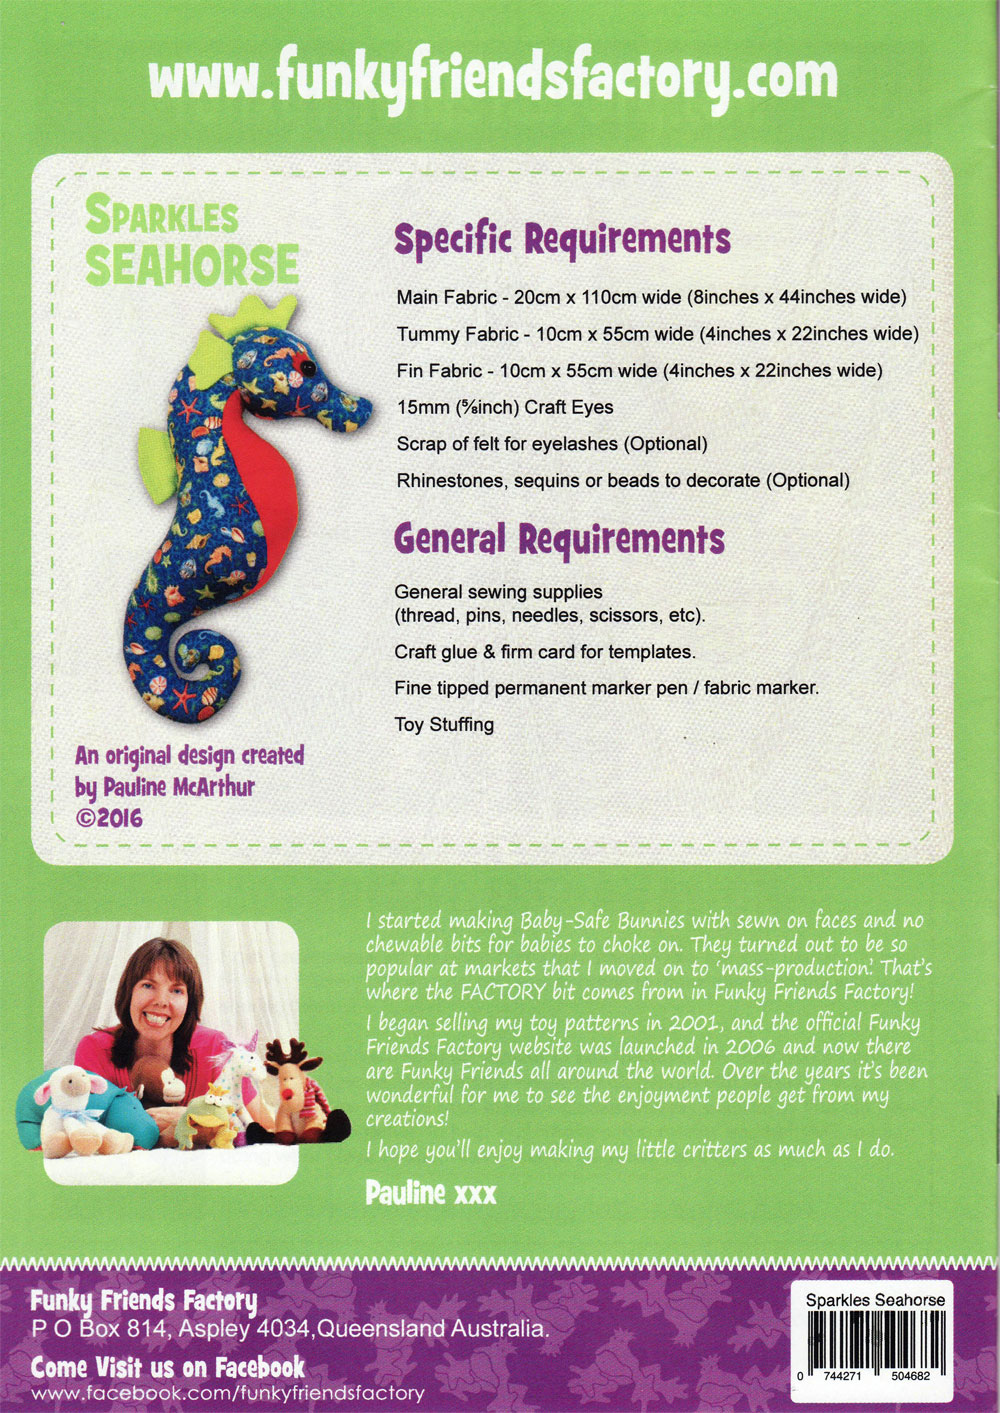 Sparkles-Seahorse-sewing-pattern-Funky-Friends-Factory-back